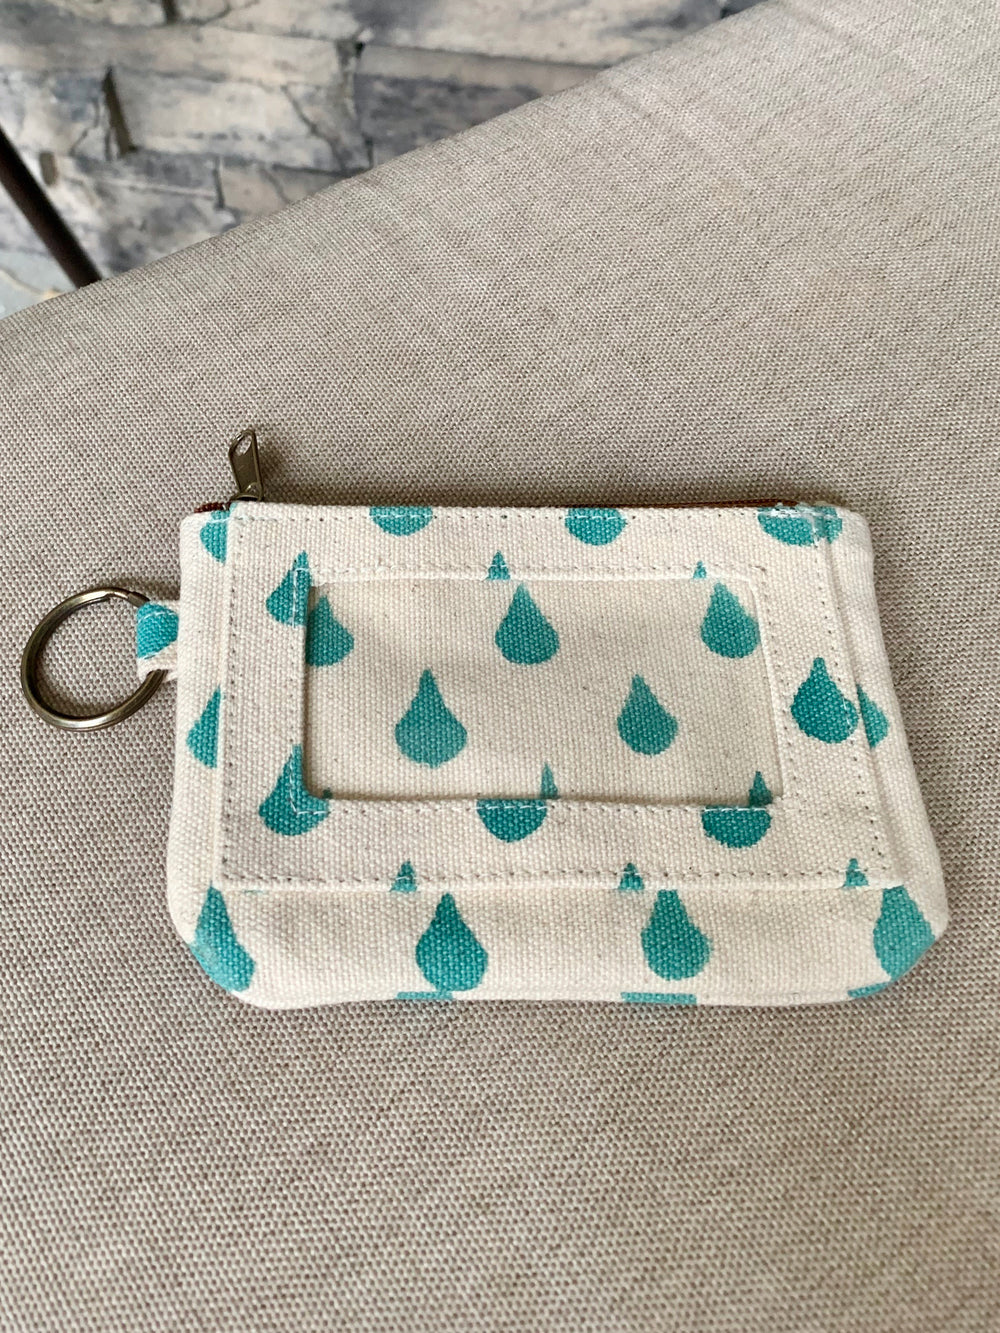 ID Pouch by Joyn from India